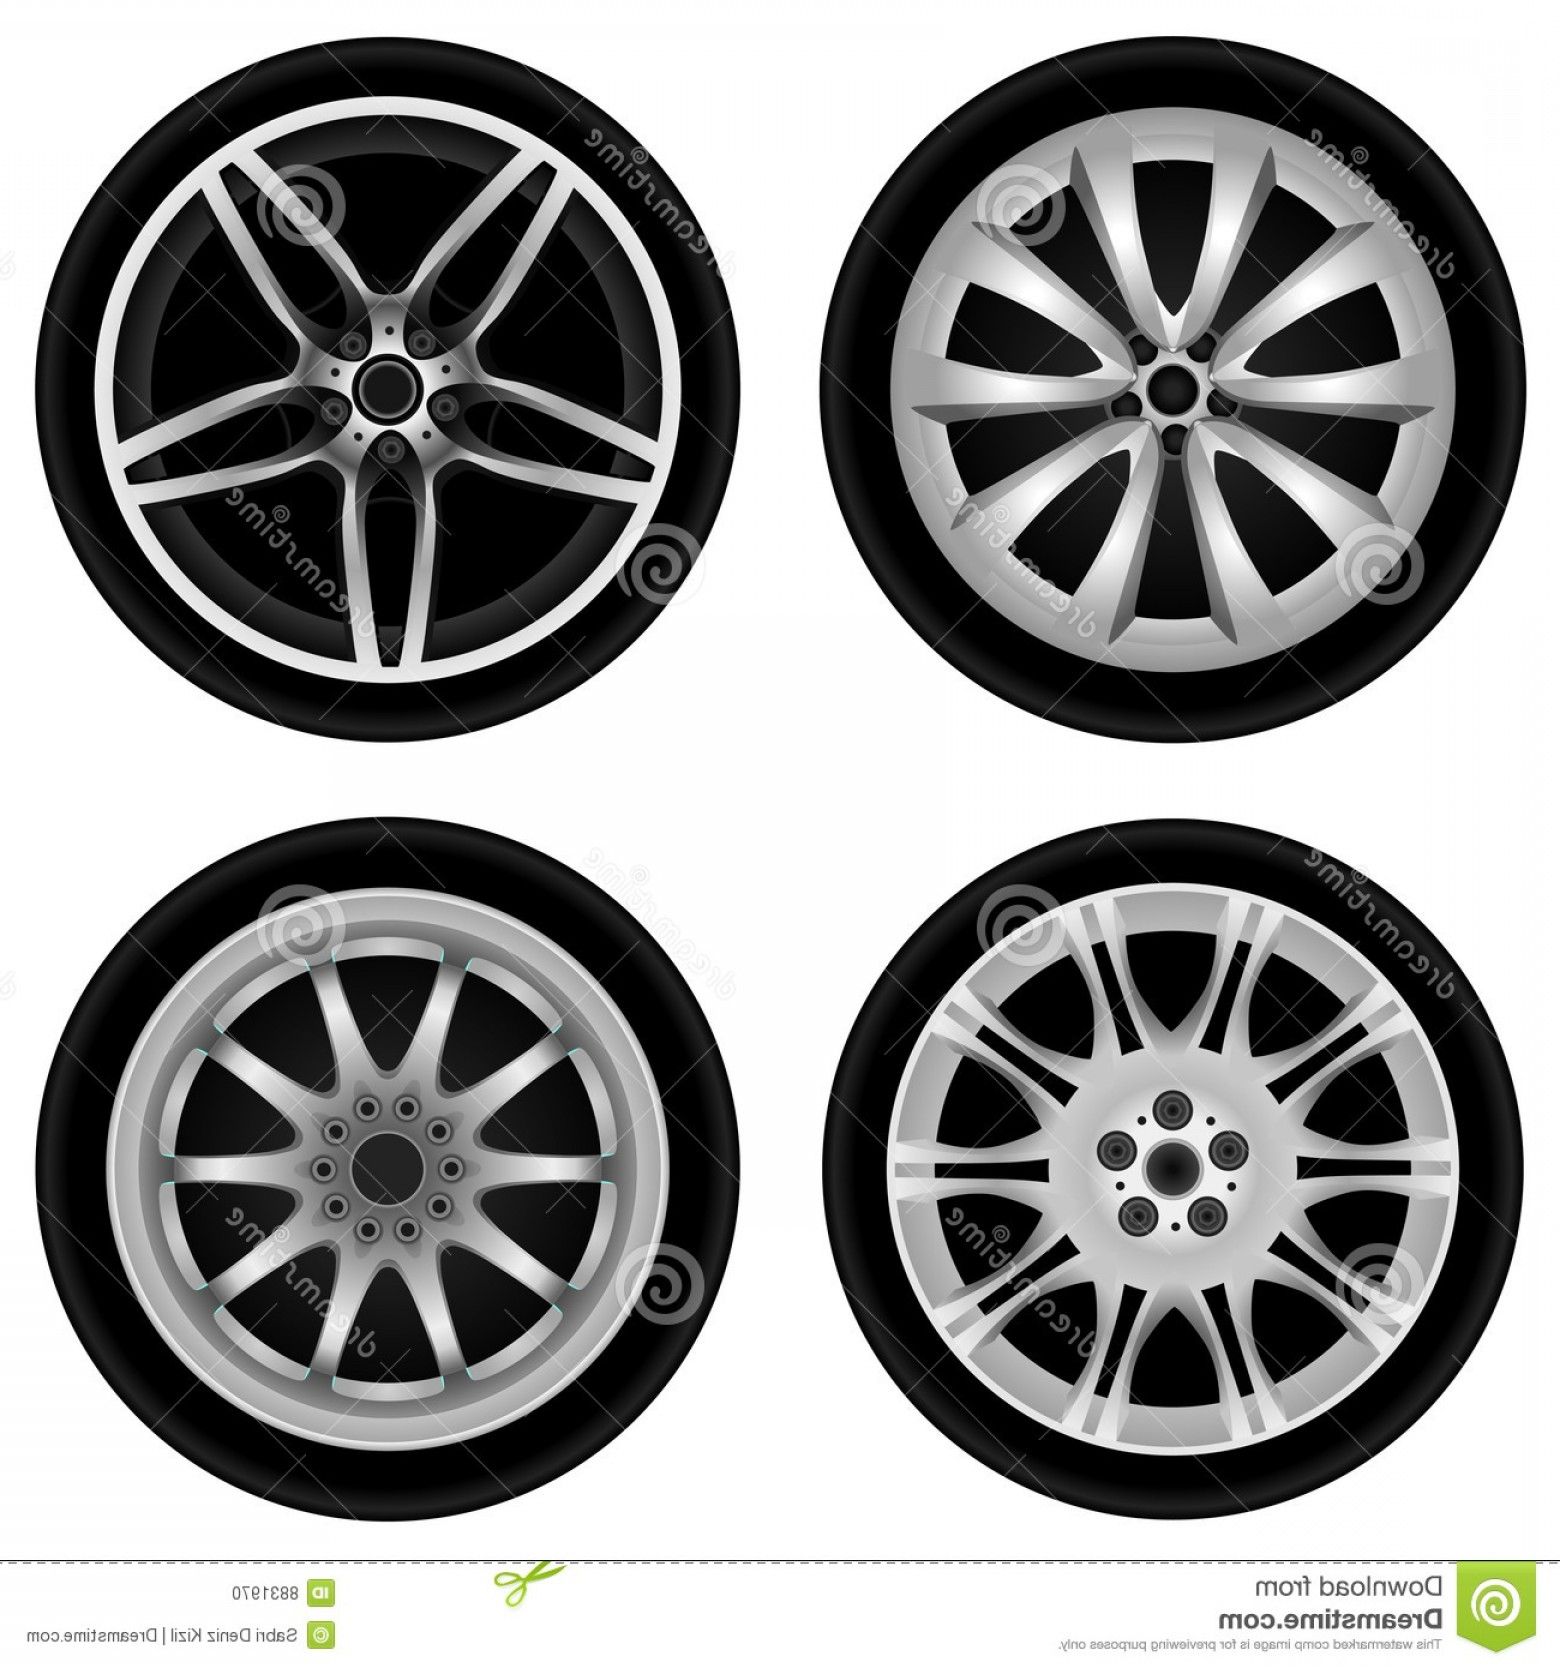 MB Wheels Vector Chrome: Stock Photo Chrome Wheel Vector Image